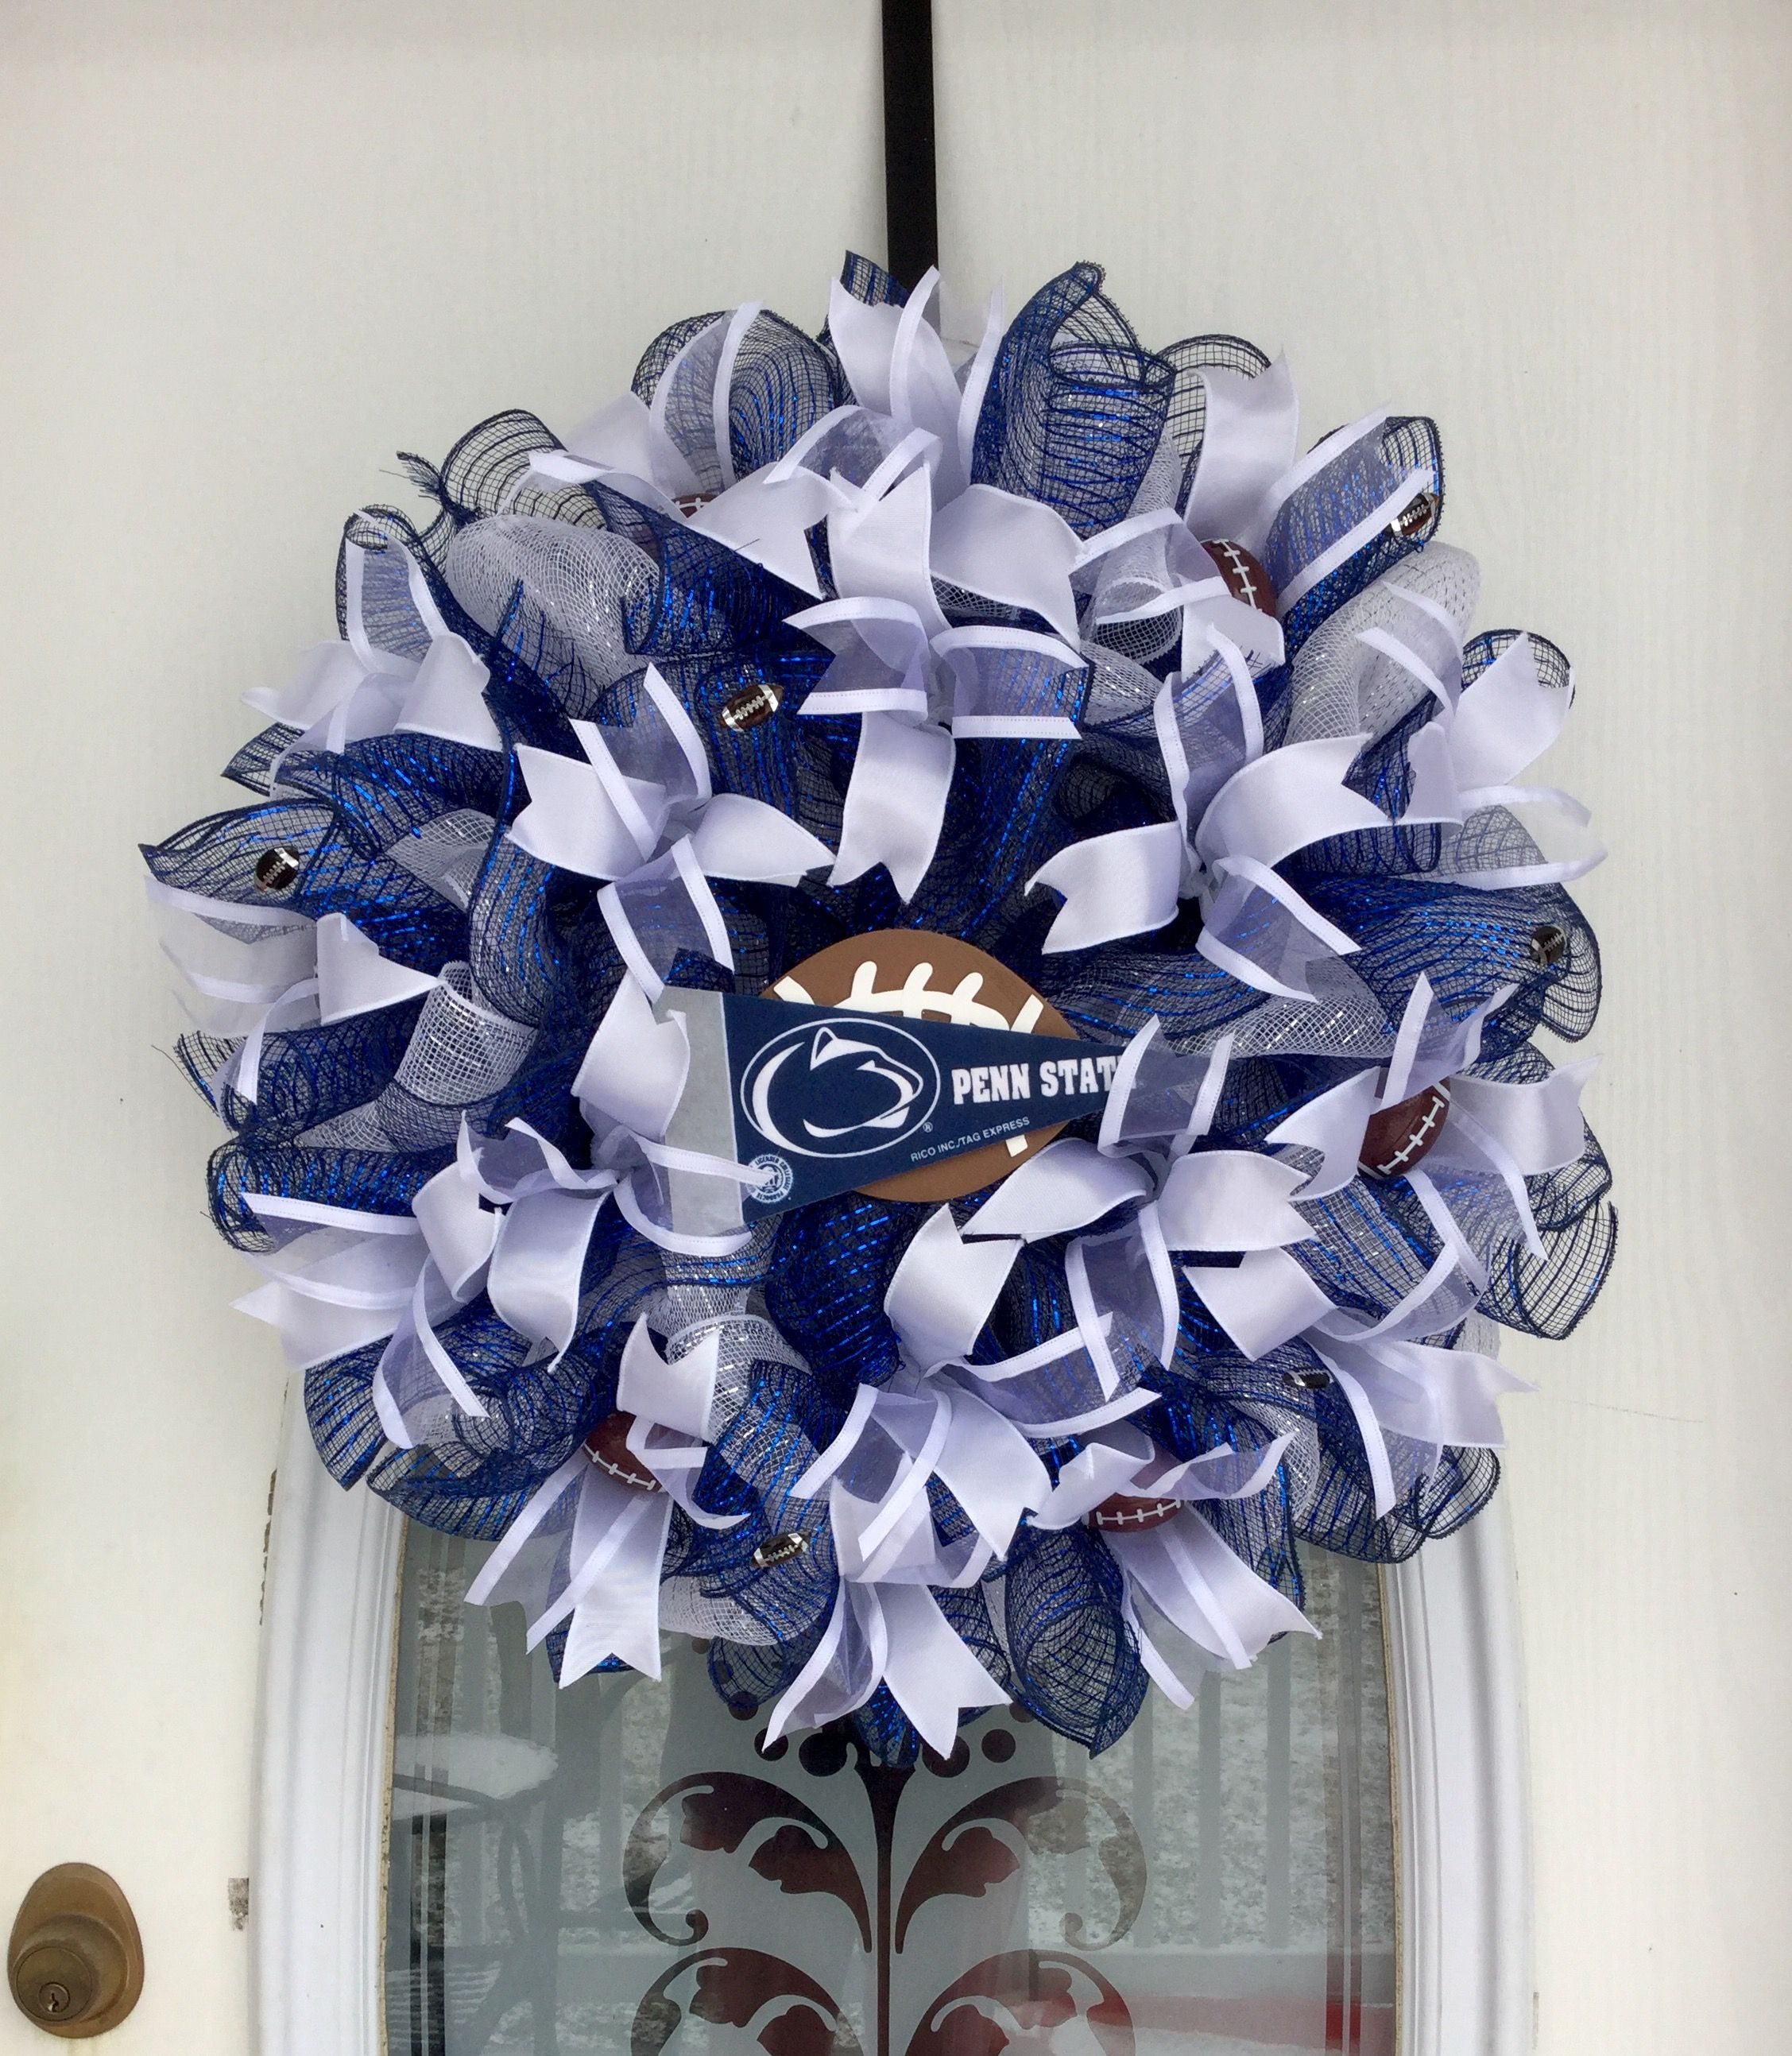 22 White And Navy Blue Deco Mesh Penn State Football Wreath